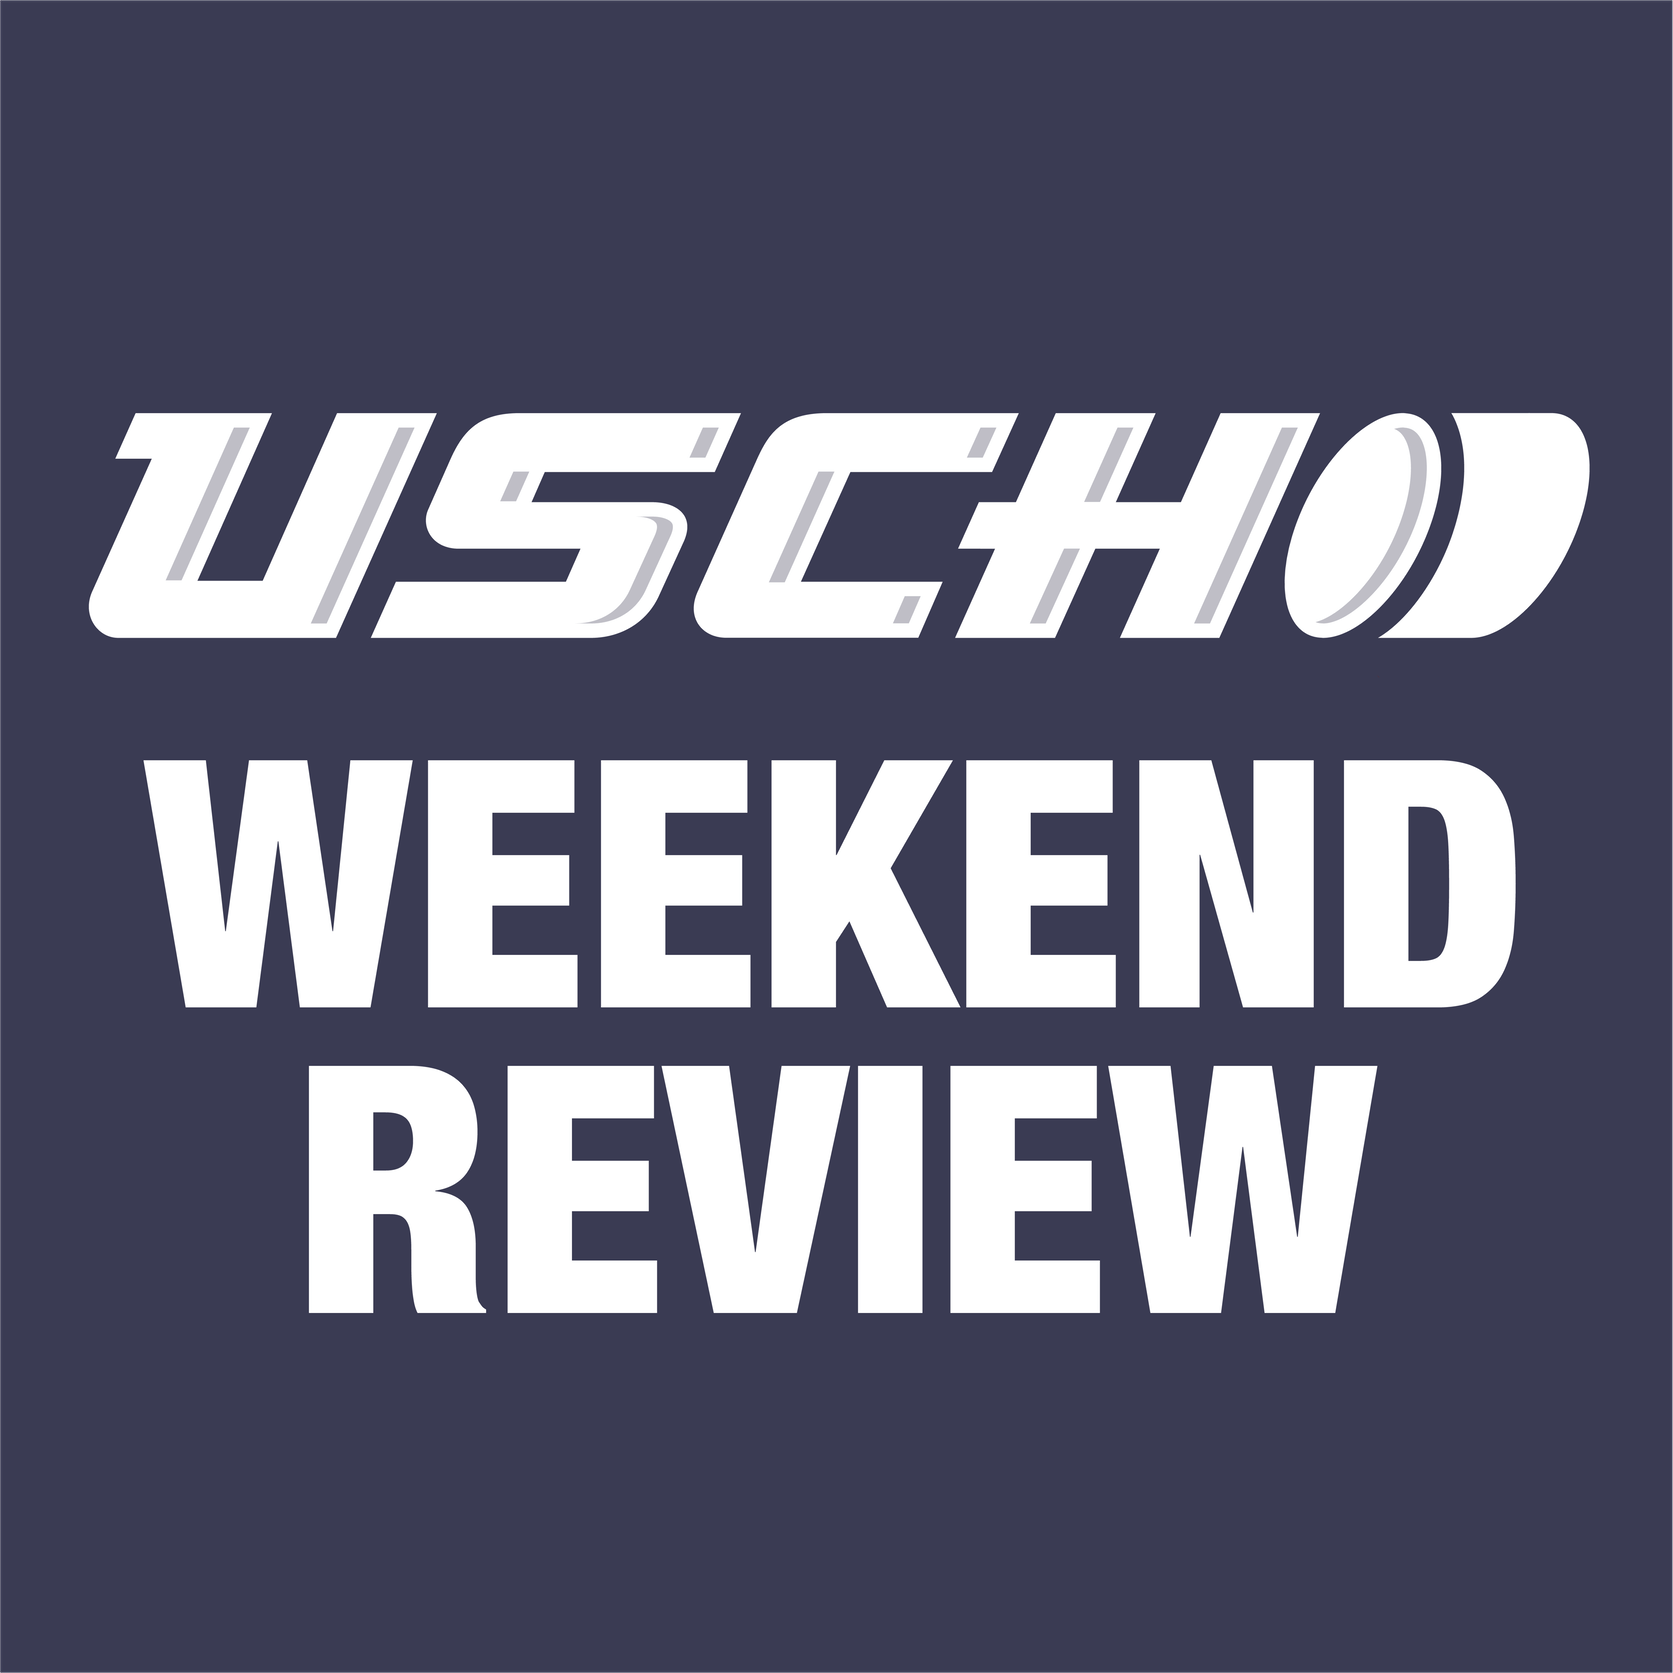 Cornell, North Dakota, Penn State with big weekends, and a defense of Jerry York against 'idiotic' comments: Weekend Review podcast Season 2 Episode 7